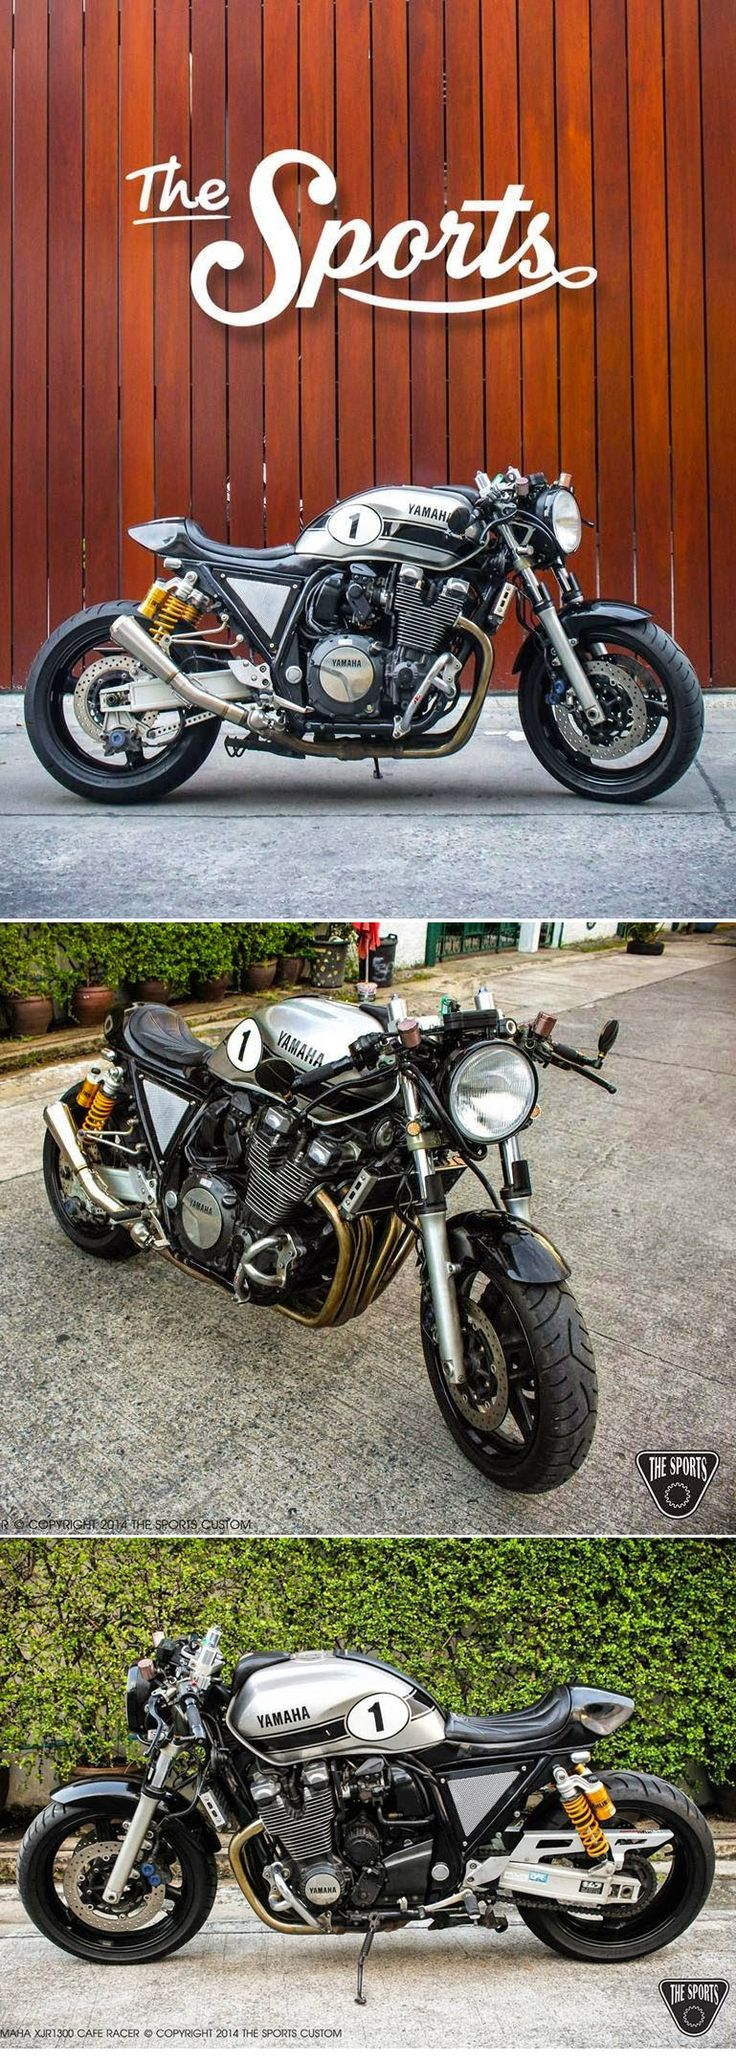 Yamaha Cafe Racer by The Sports Custom based on a Yamaha XJR1300     http://www.way2speed.com/2014/11/yamaha-xjr1300-cafe-racer.html#axzz3YCiMZAME